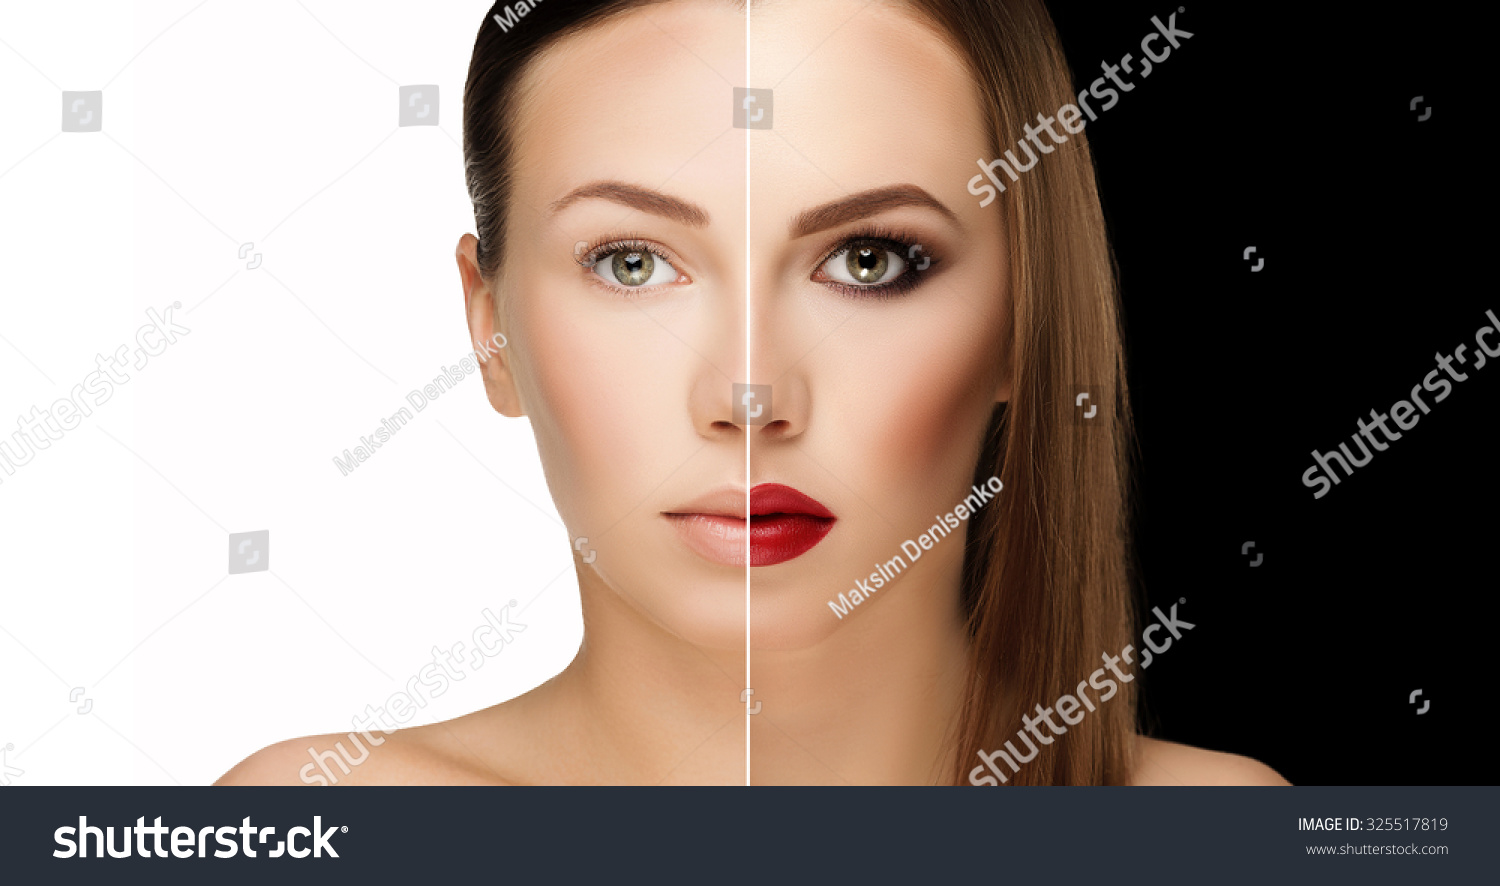 Comparison Portraits Beautiful Woman Without Makeup Stock Photo 325517819 - Shutterstock